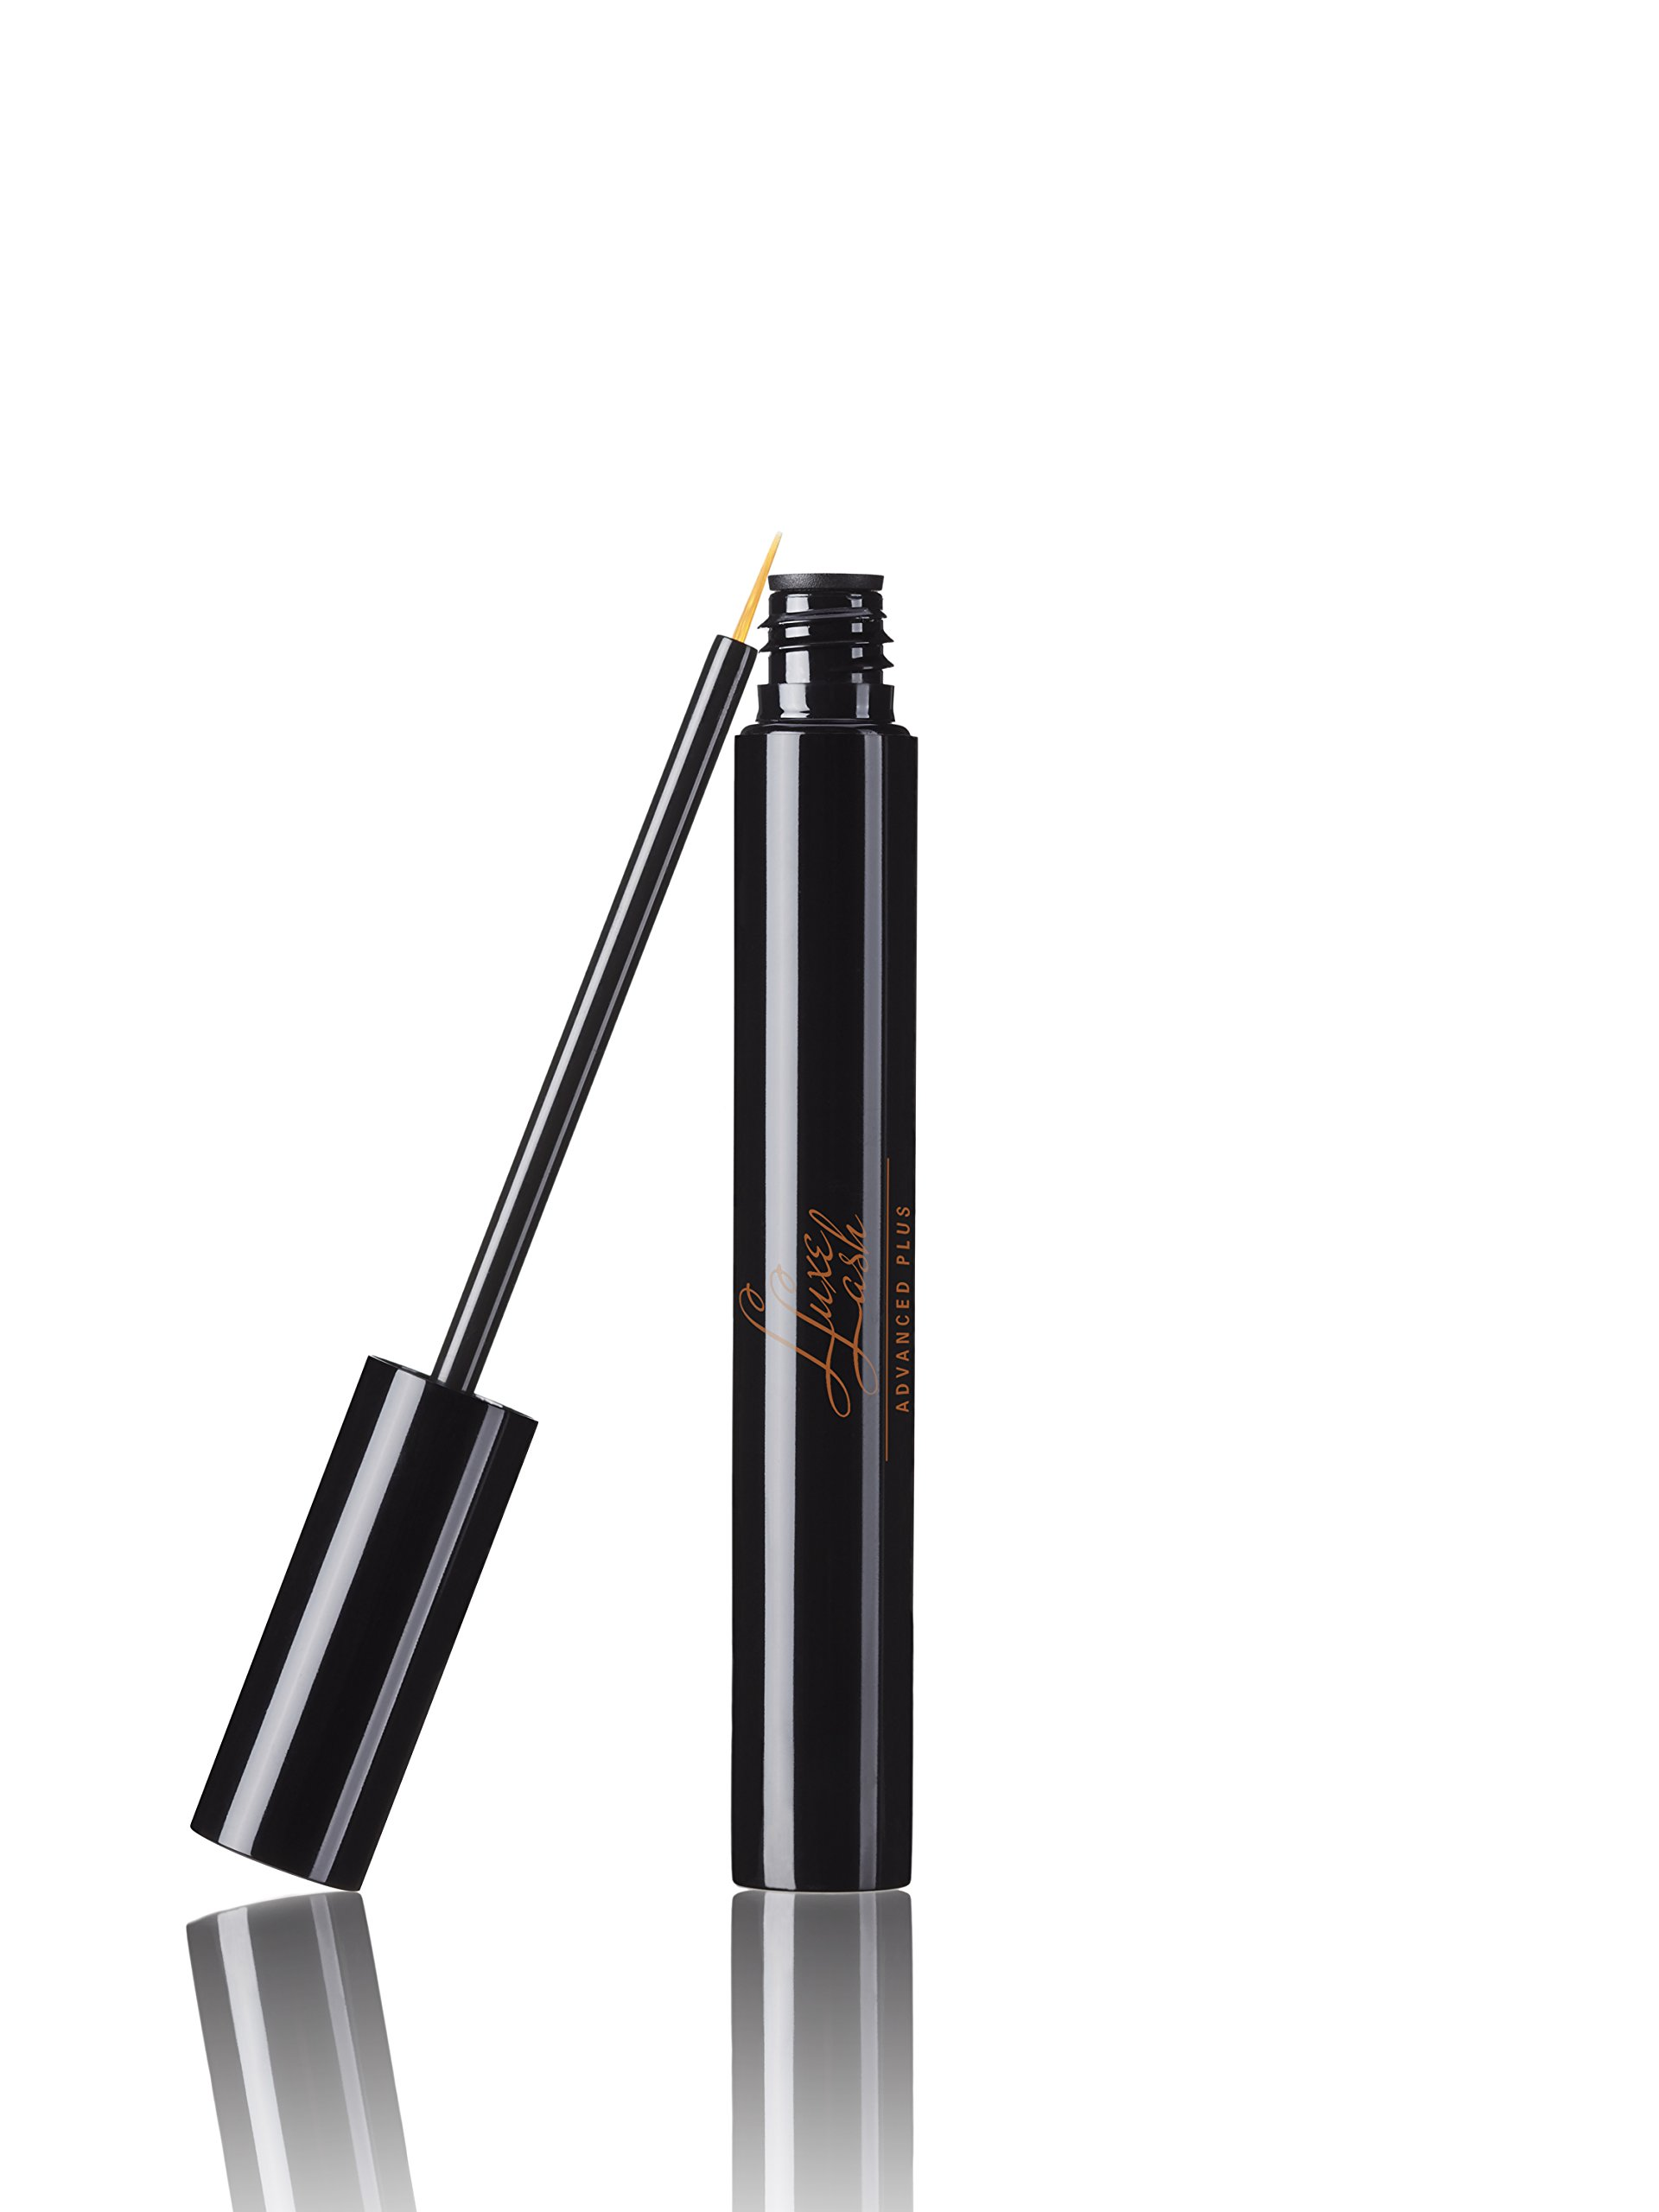 Eyelash enhancer serum 8ml. Luxe Lash Advanced + | Eyelash Booster Serum for eyelashes and eyebrows - Eyelash booster - Eyelash growth serum - Eyelash serum by Luxe Lash by Lescale (Image #8)